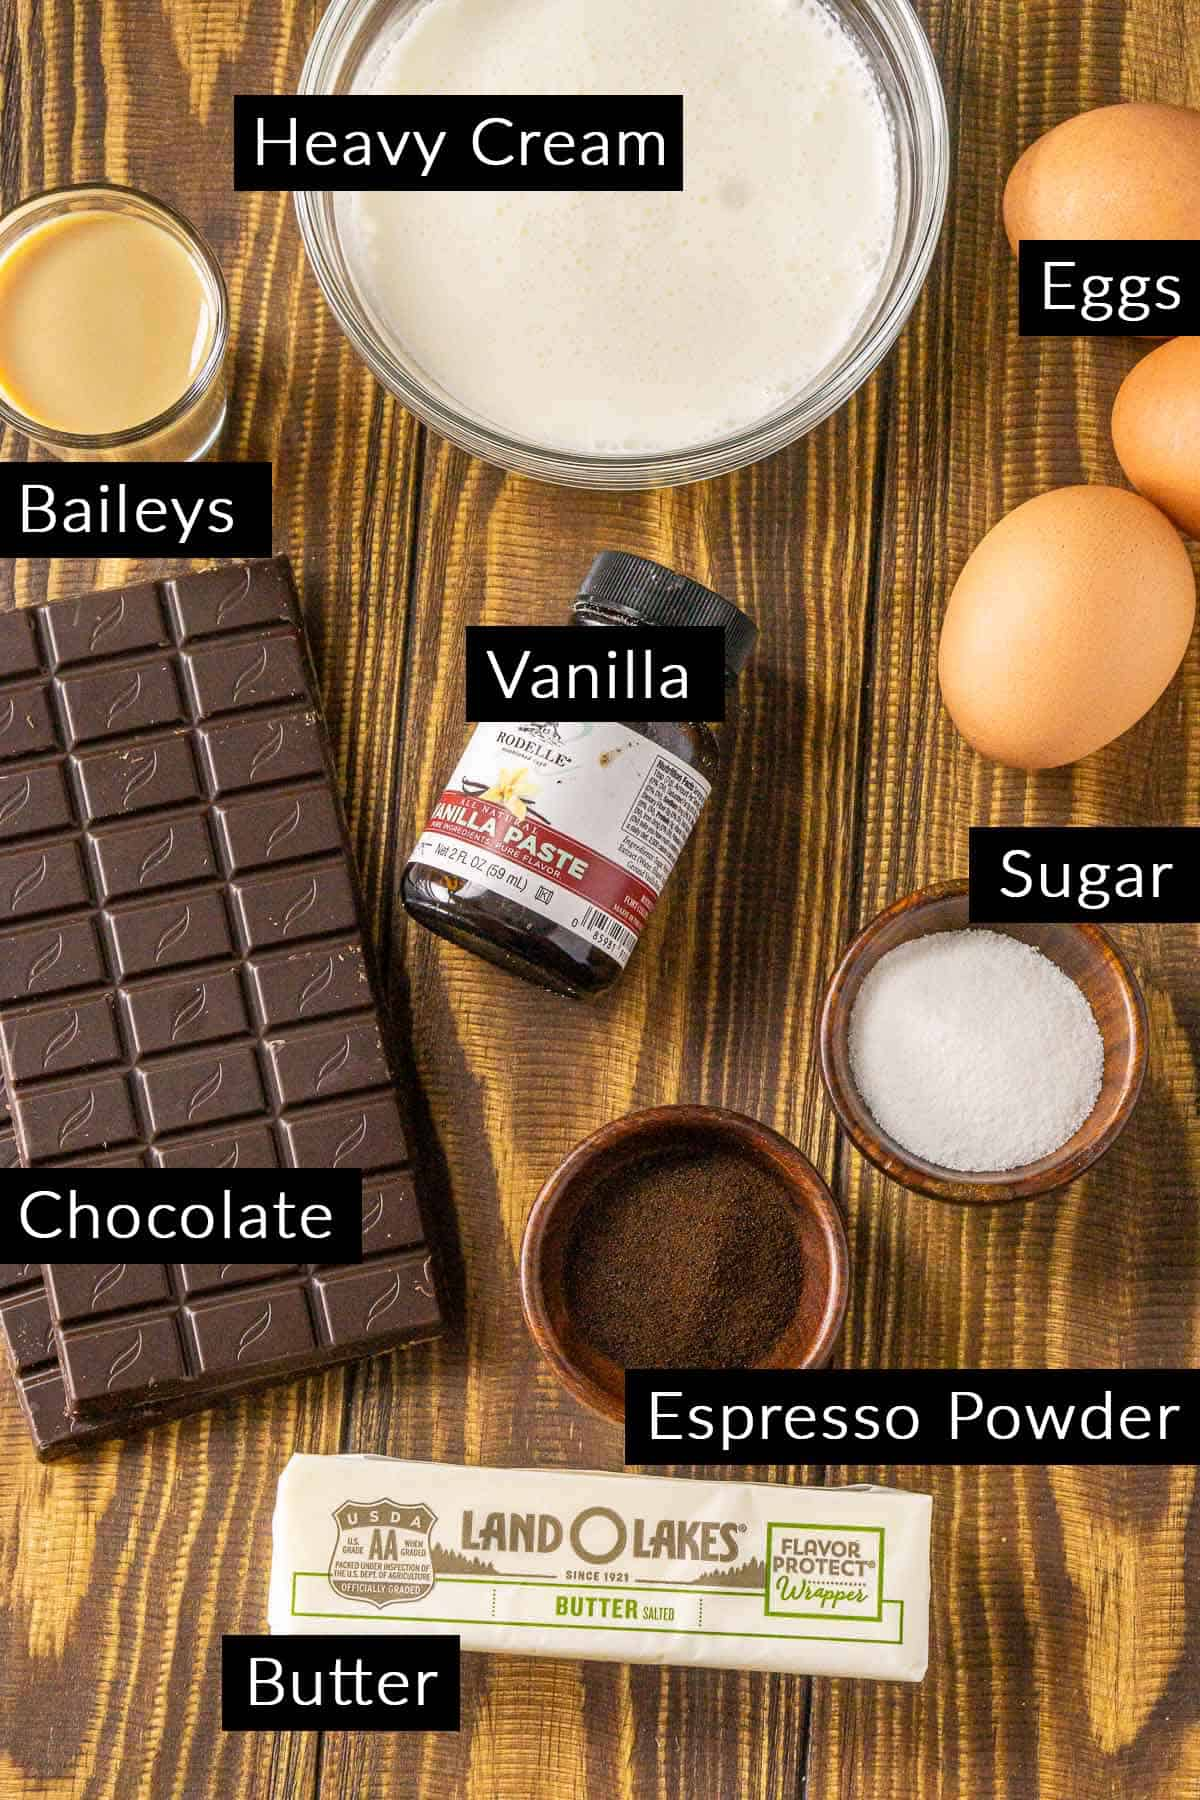 The Baileys mousse ingredients with black and white labels on a wooden background.